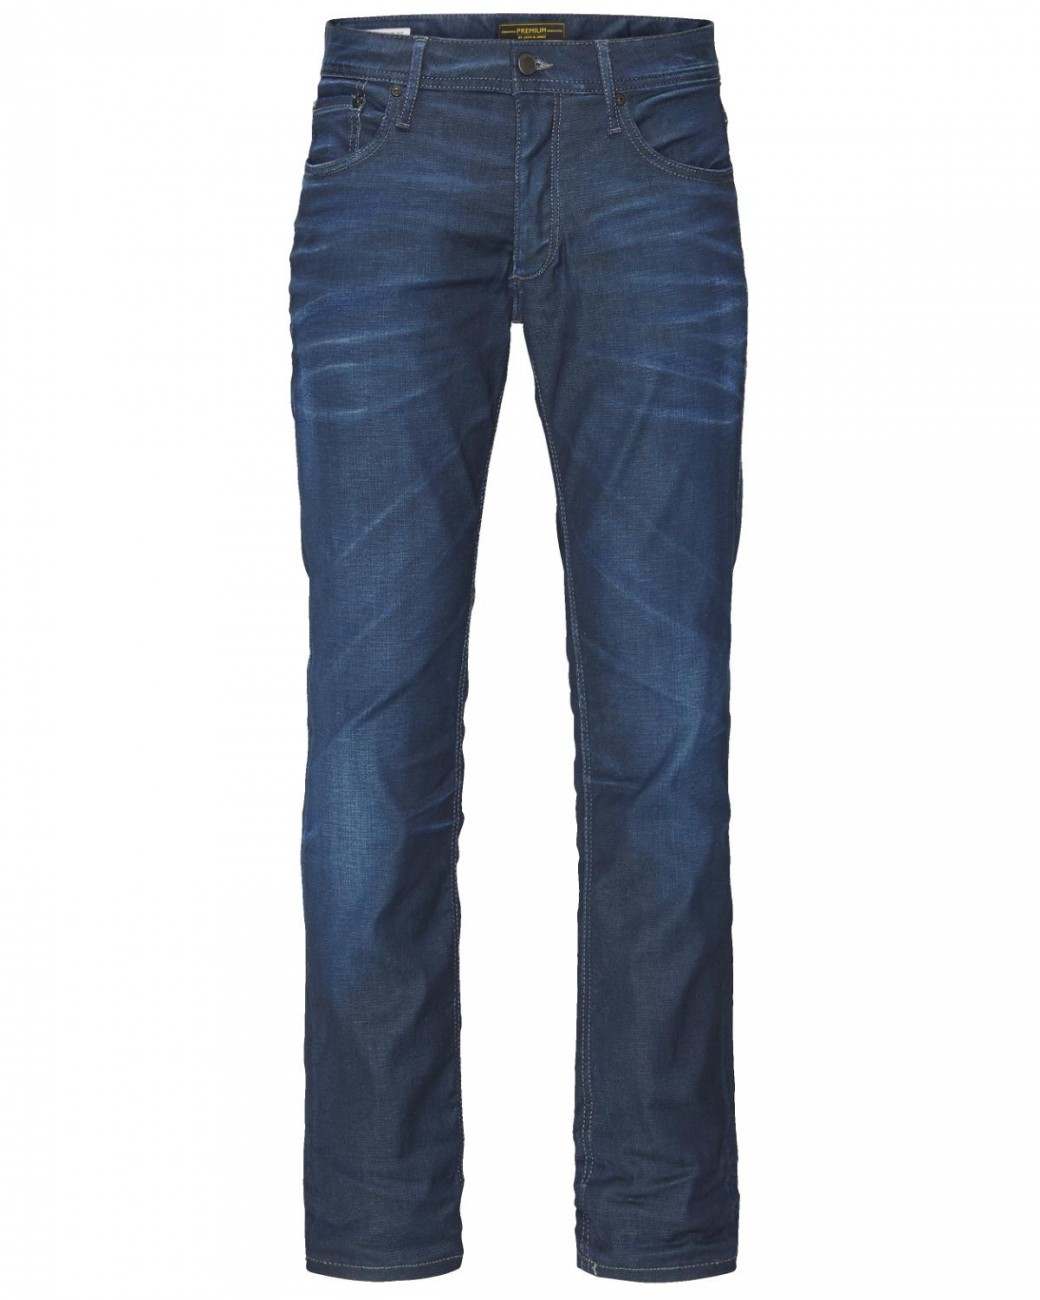 Jack & Jones Herren Jeans JJTIM - Slim Fit - Blau - Medium Blue Denim